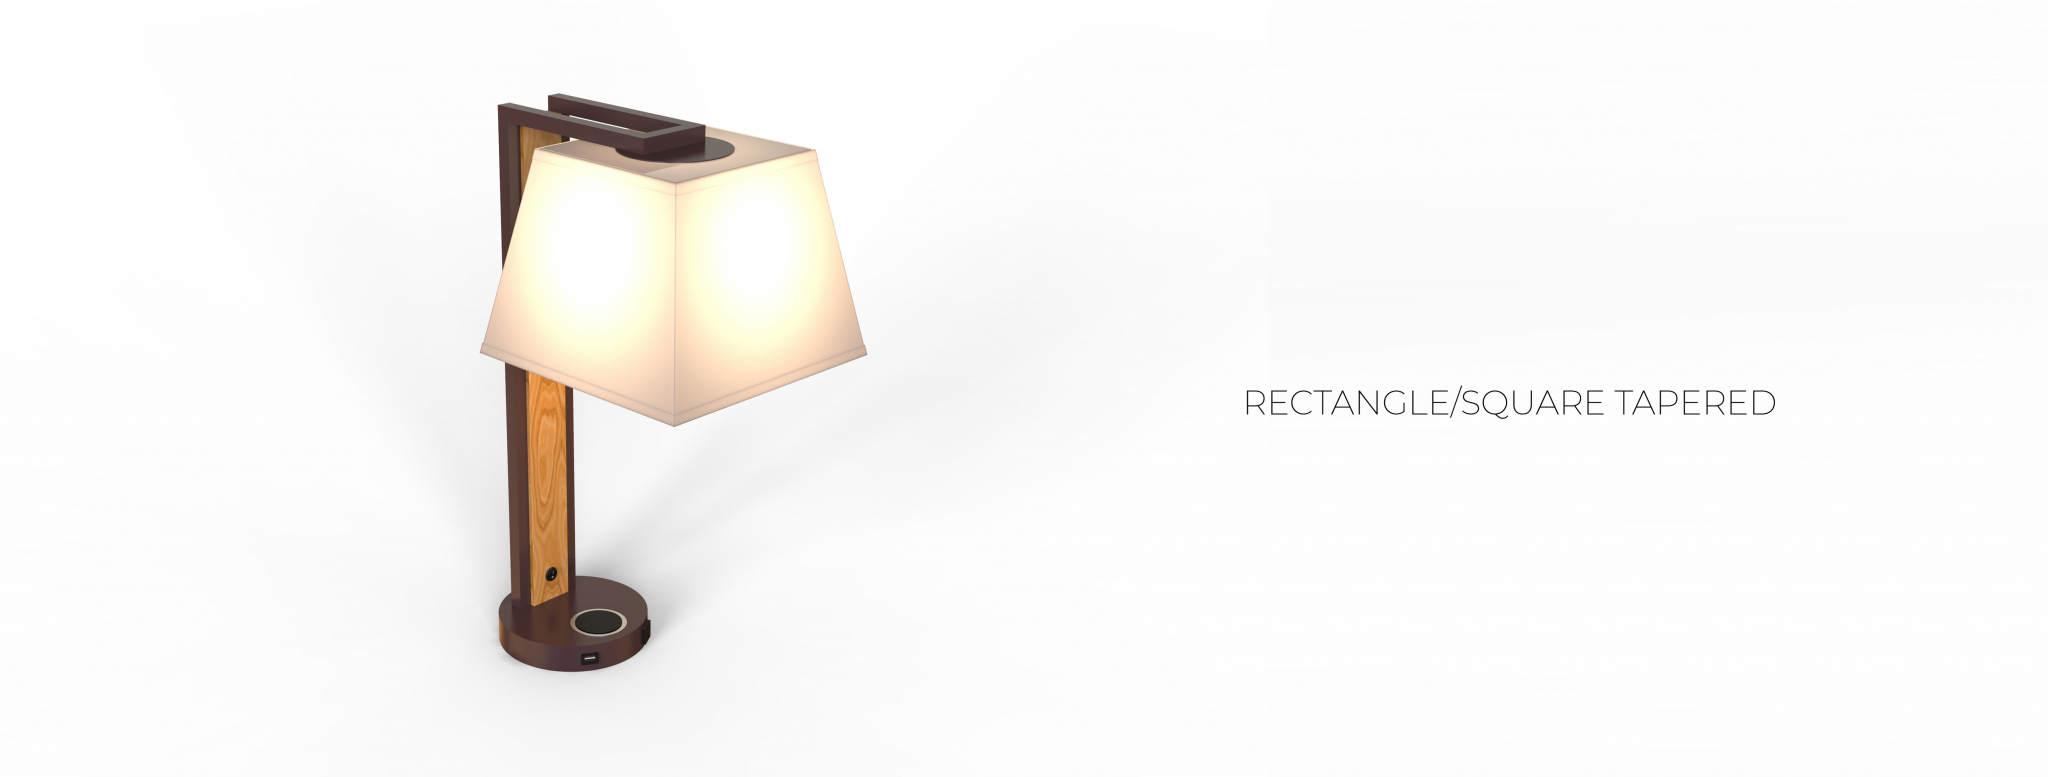 RECTANGLE-SQUARE TAPERED